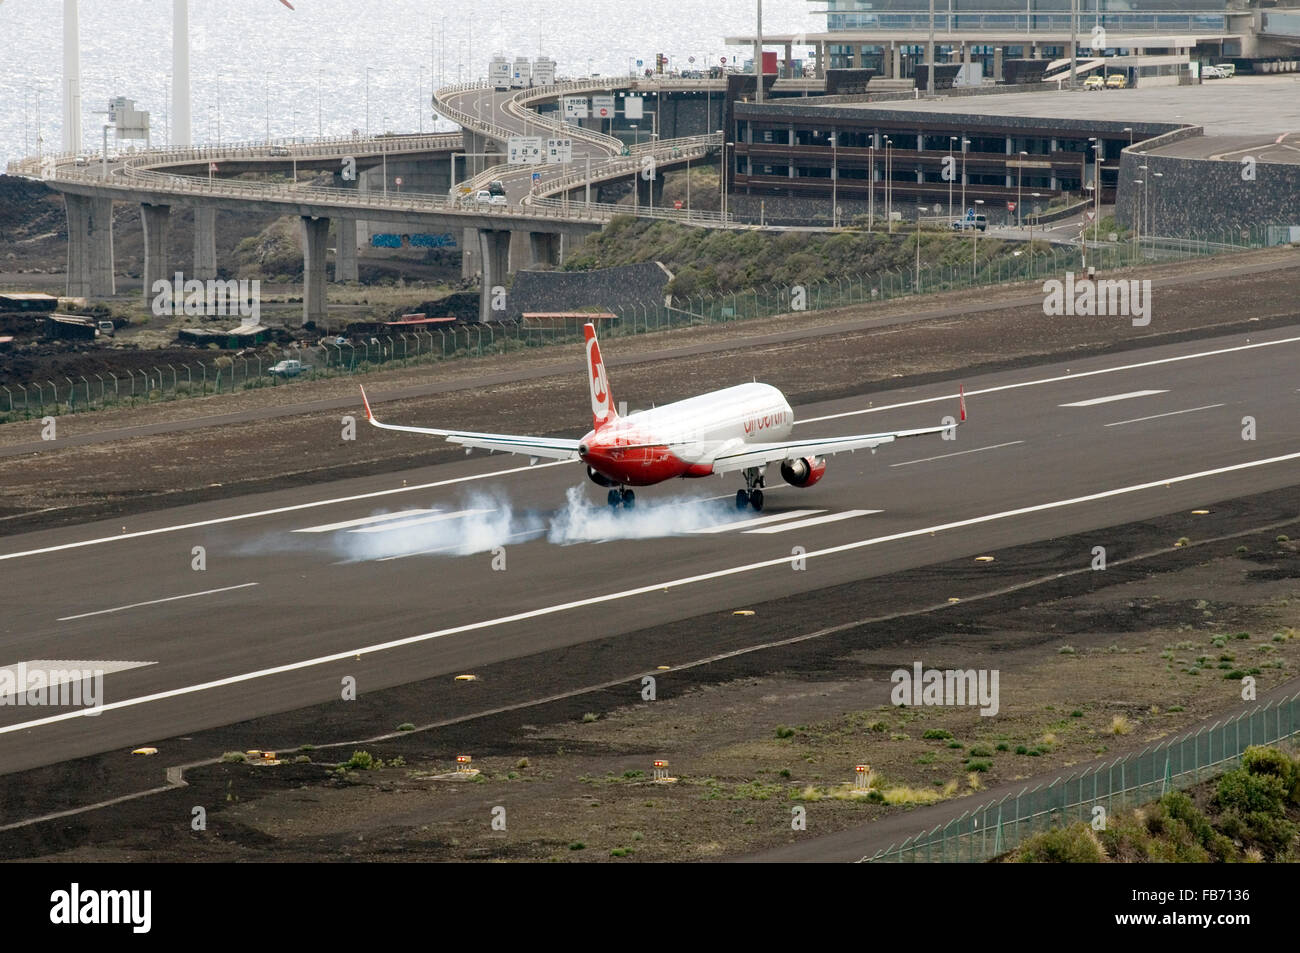 Air Berlin plane touching down at santa cruz la palma airport in the canary islands with smoke coming off the tires - Stock Image